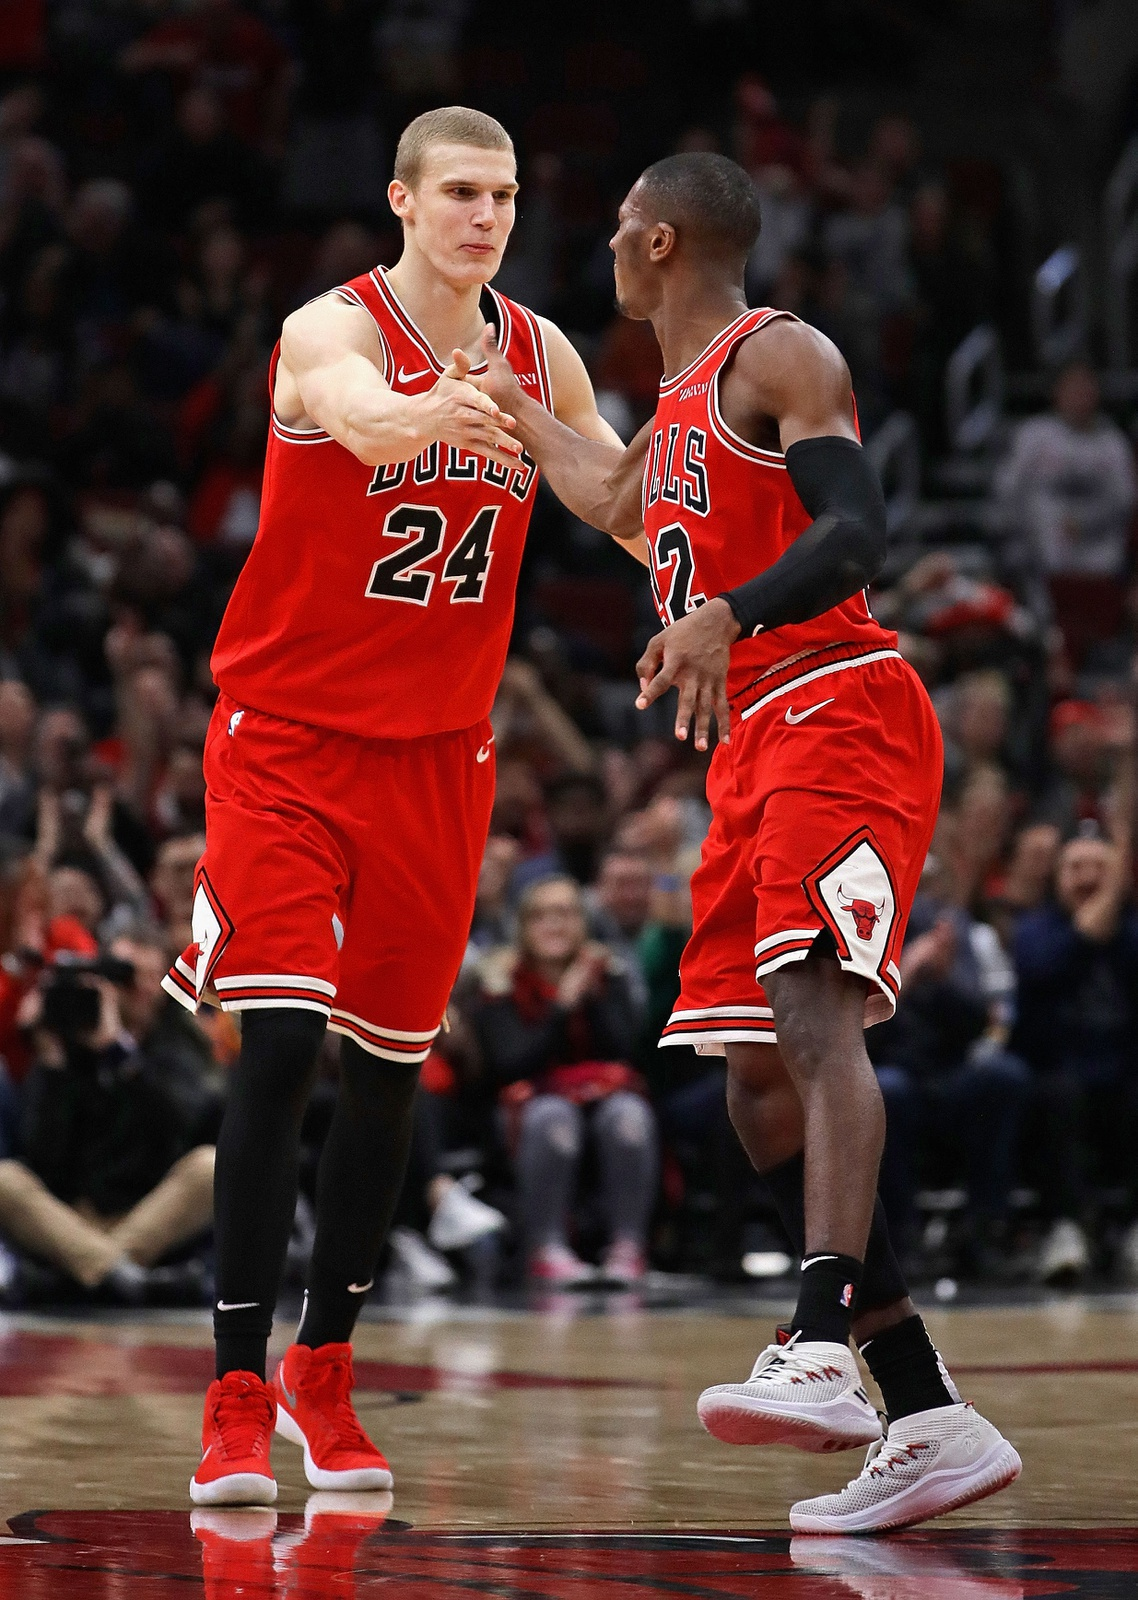 Lauri Markkanen #24 of the Chicago Bulls is congratulated by Kris Dunn #32 after hitting a three point shot against the Washington Wizards at the United Center on March 20, 2019 in Chicago, Illinois.